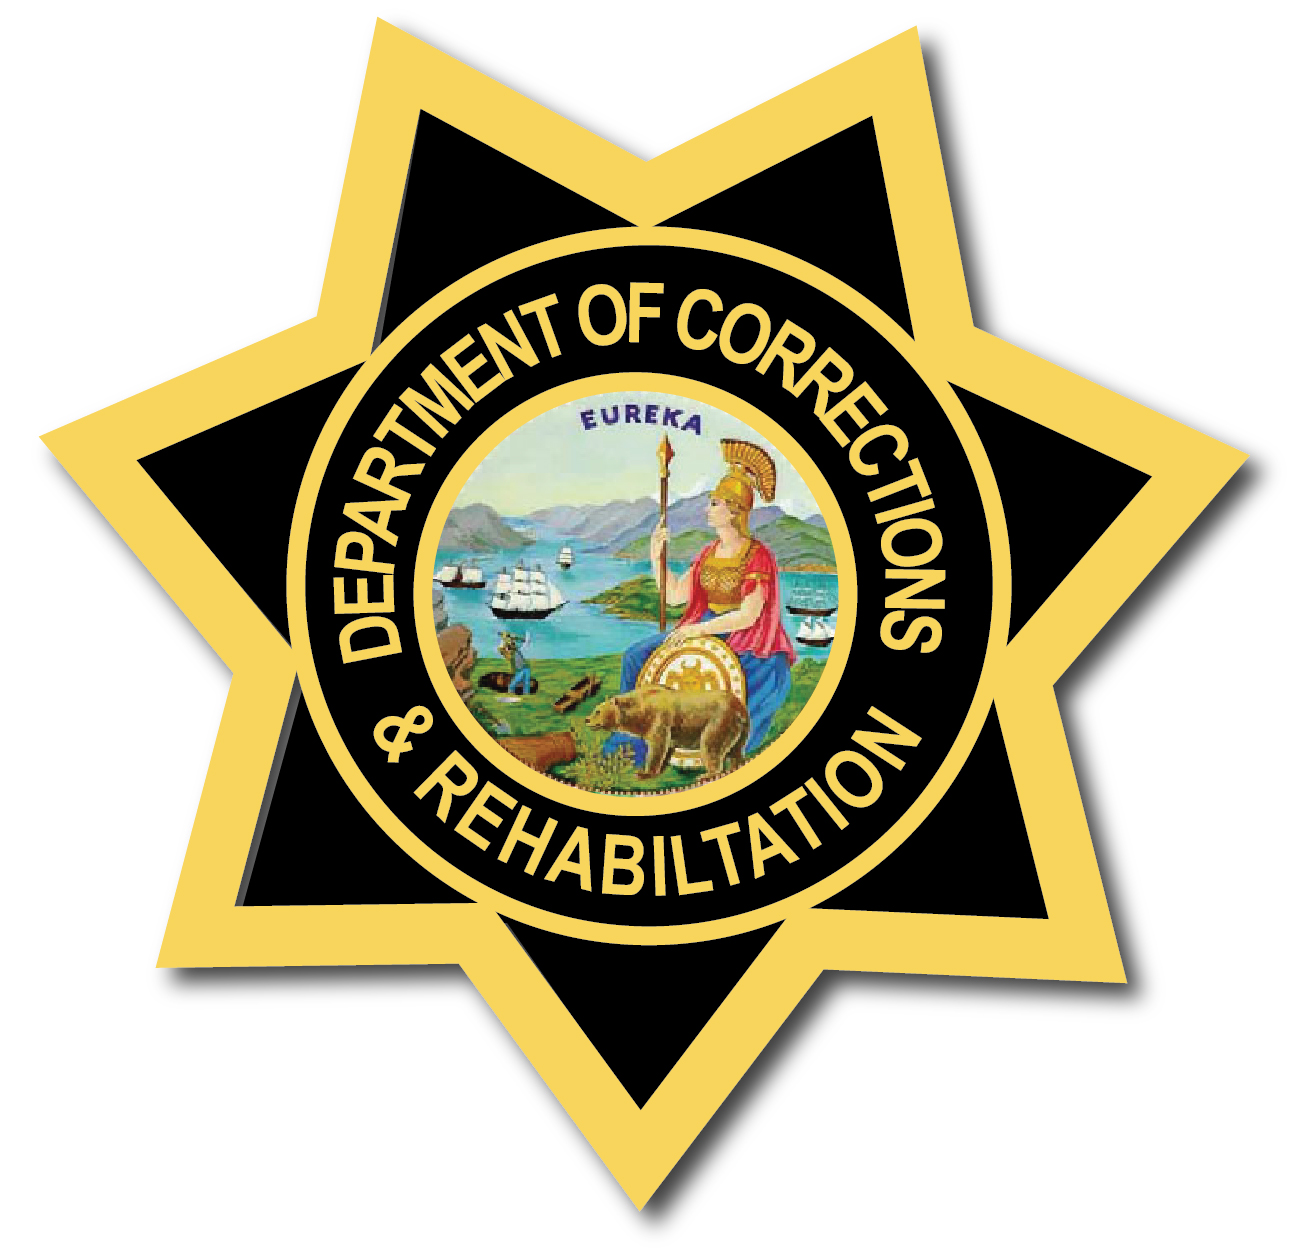 PP-2450 - Carved  Wall Plaque of the Star Badge of theCalifornia Department of Corrections and Rehabilitation (State Prisons), Artist Painted